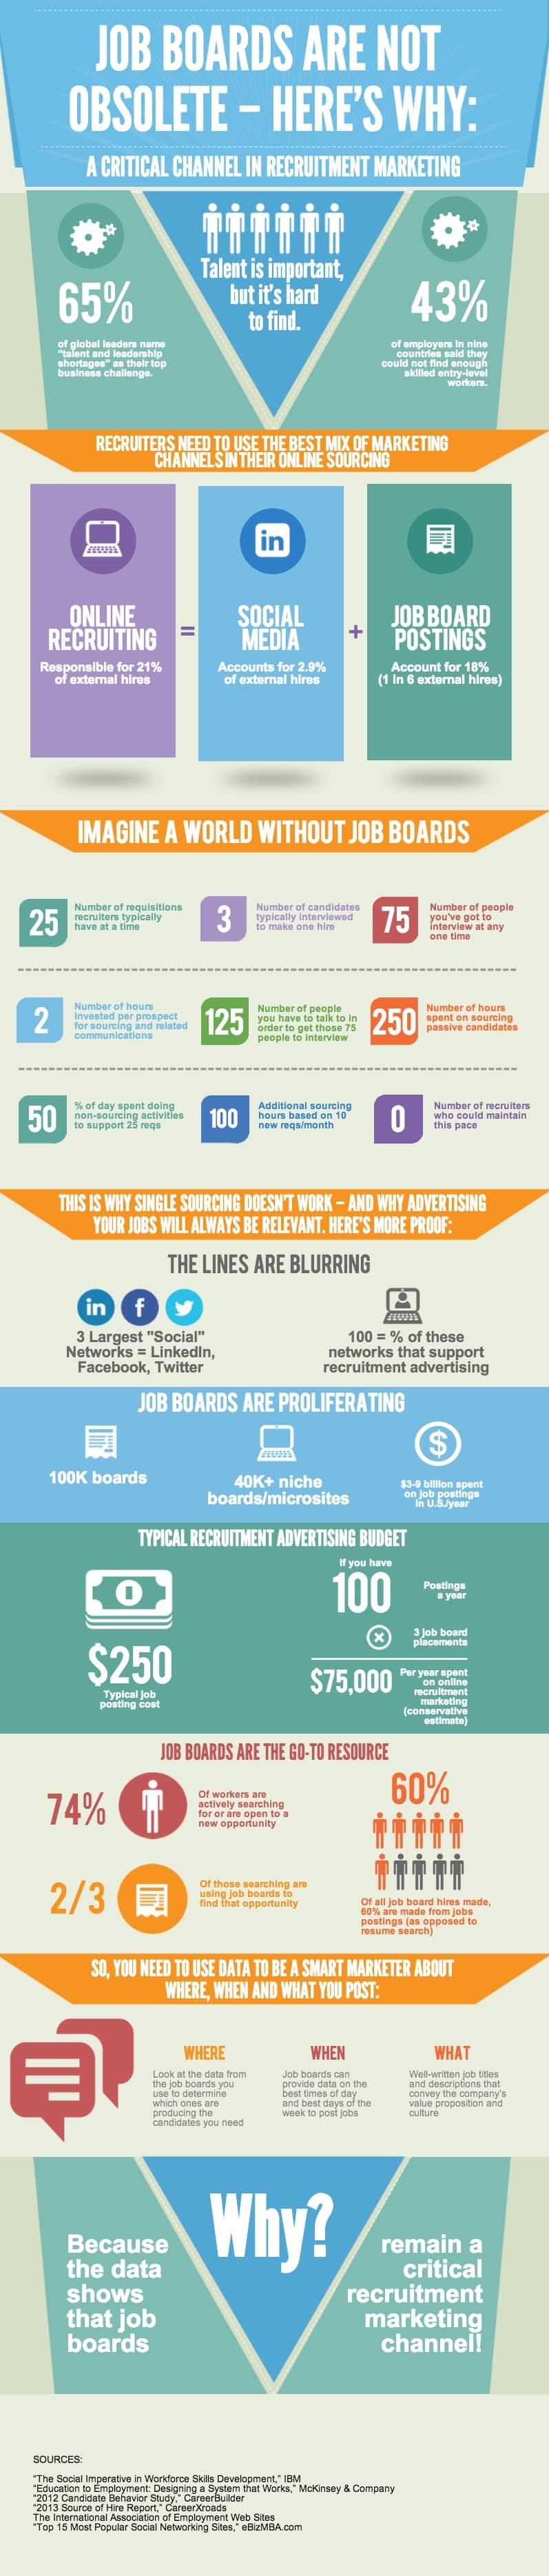 why job boards are not obsolete infographic